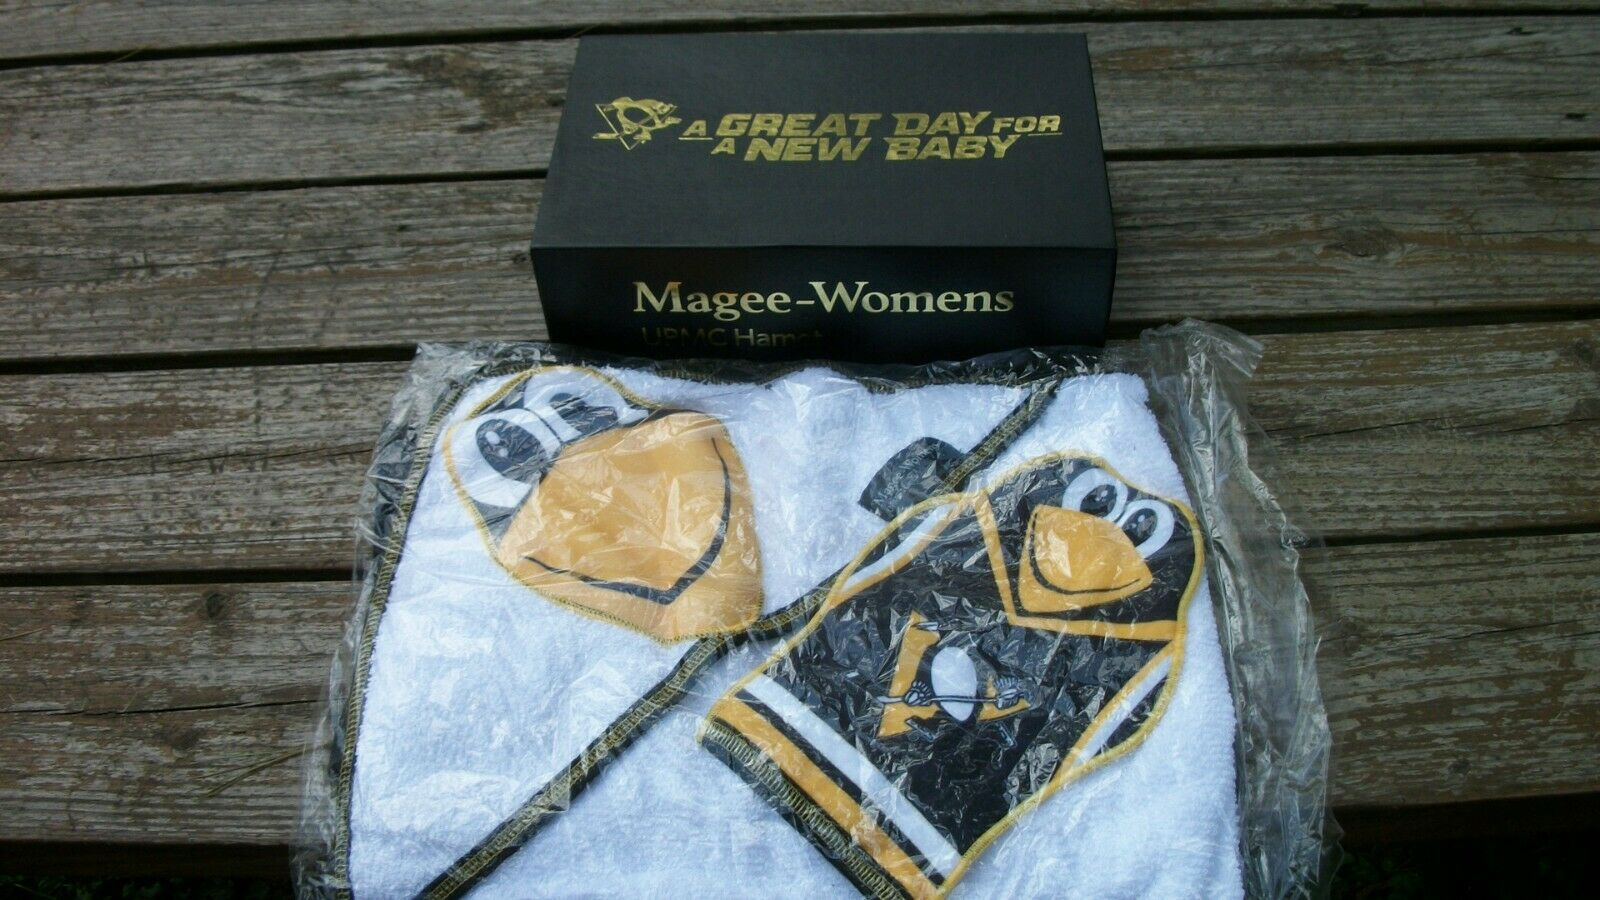 Great Day for a New Baby Magee-Womens UPMC Hamot Penguins To